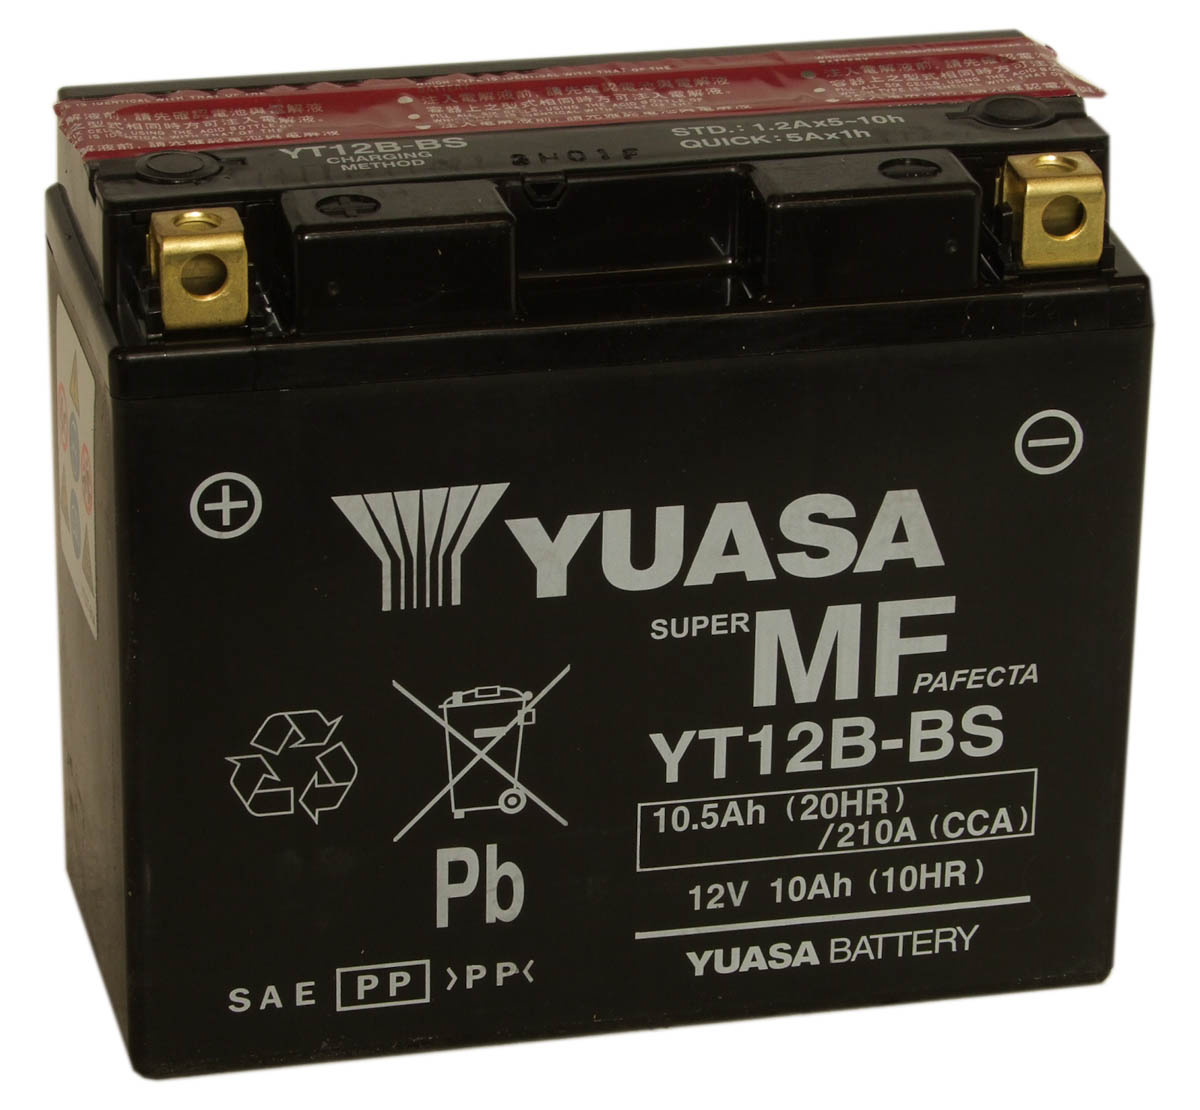 Get it delivered to your door - Yuasa YT12B-BS Battery (Taiwan) - 1700 (EGP)